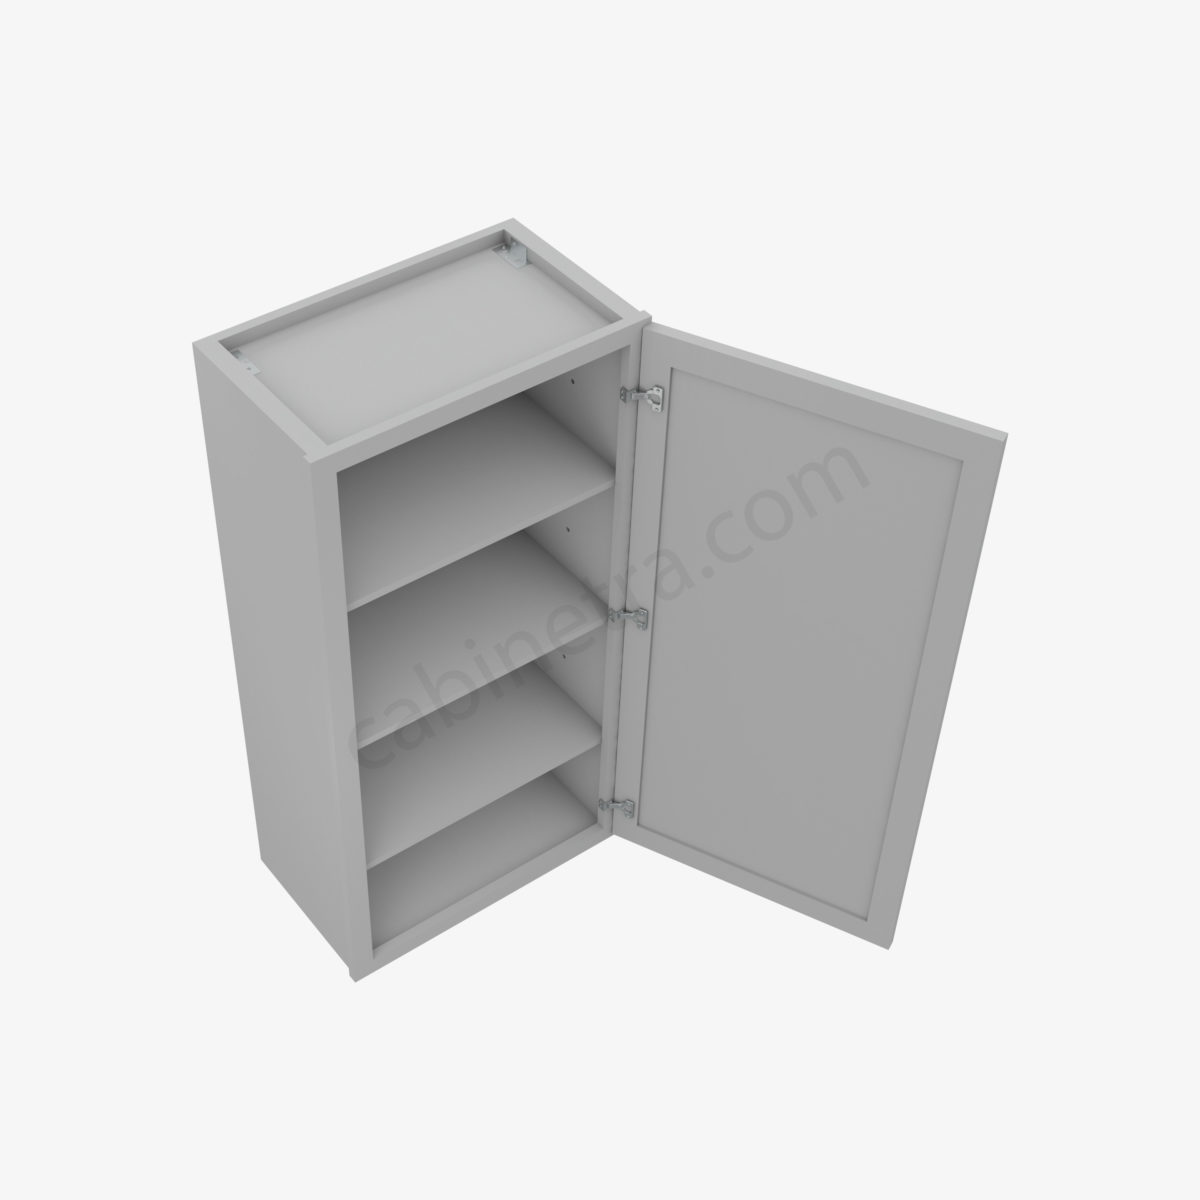 AB W2142 2 Forevermark Lait Gray Shaker Cabinetra scaled